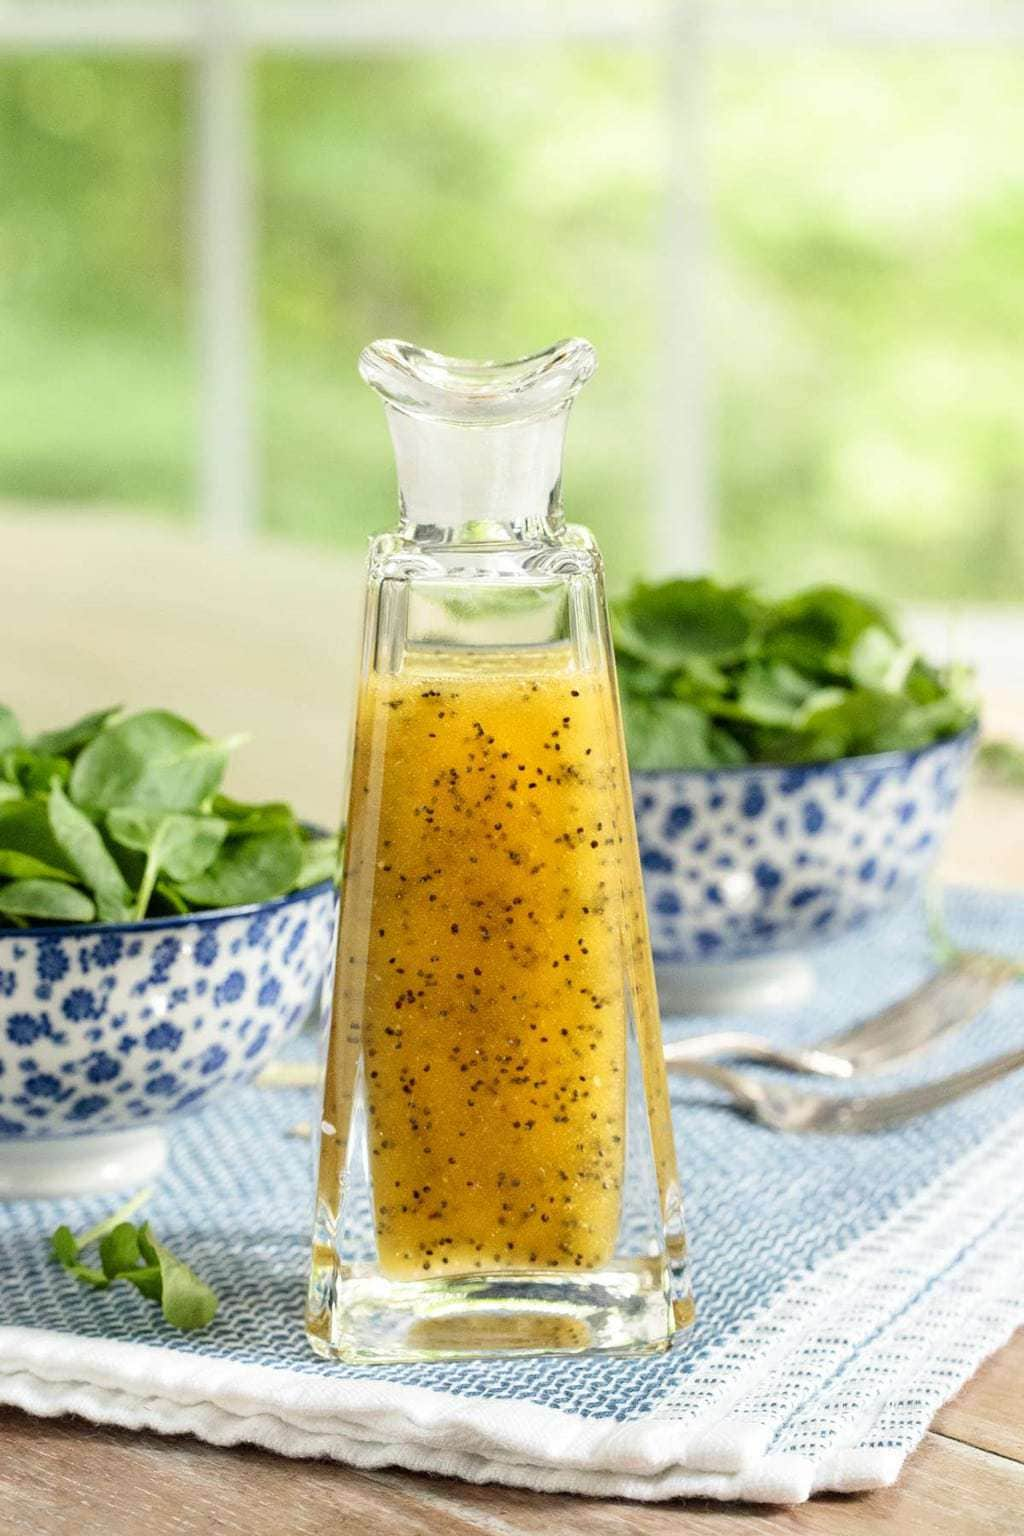 Vertical photo of a glass bottle of Honey-Cider Poppy Seed Dressing on a blue and white patterned cloth with bowls of fresh spinach in the background.